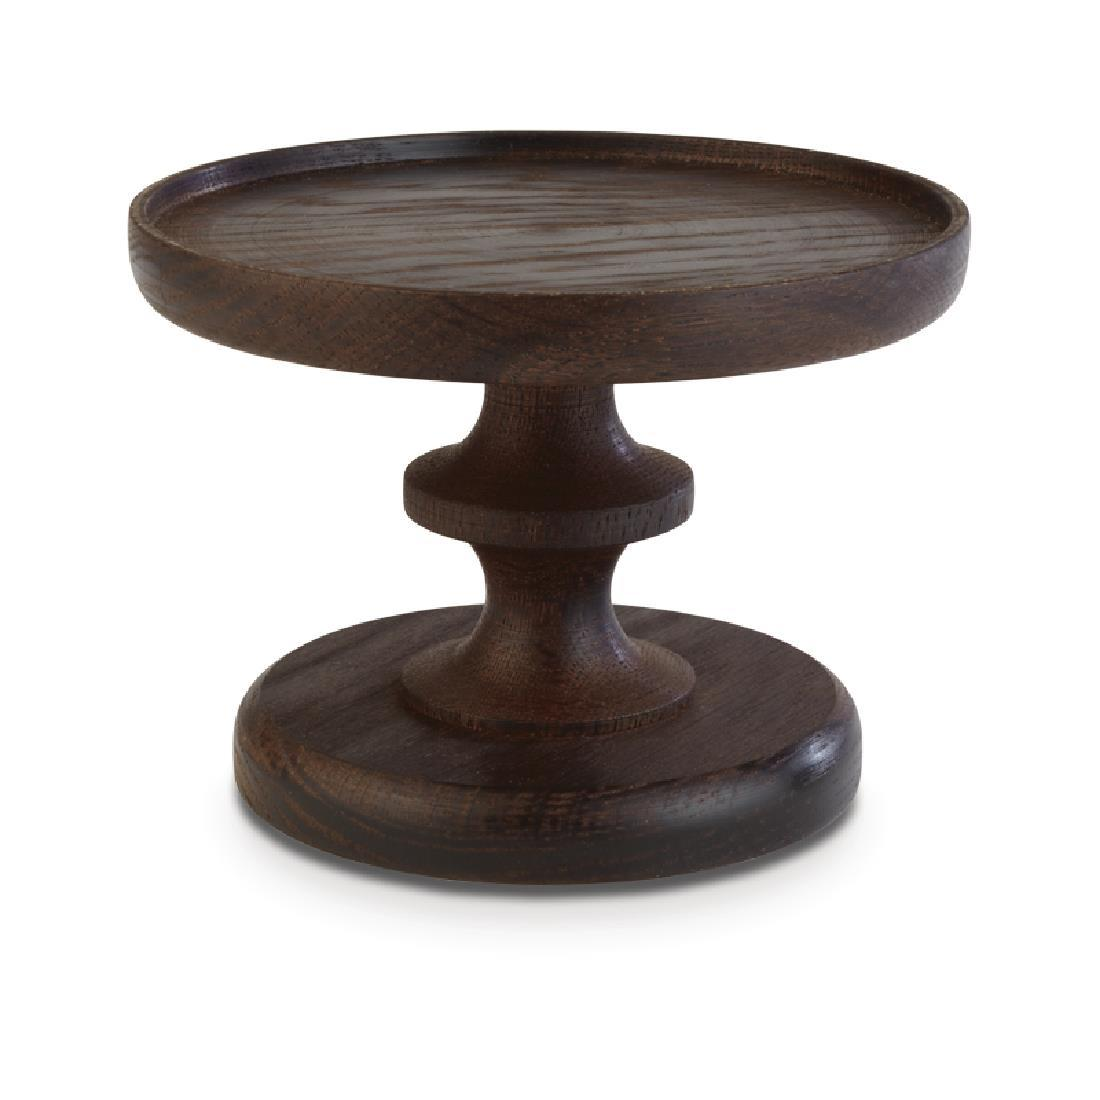 DE559 - APS+ Wood Buffet Pedestal Oak Short - Each - DE559